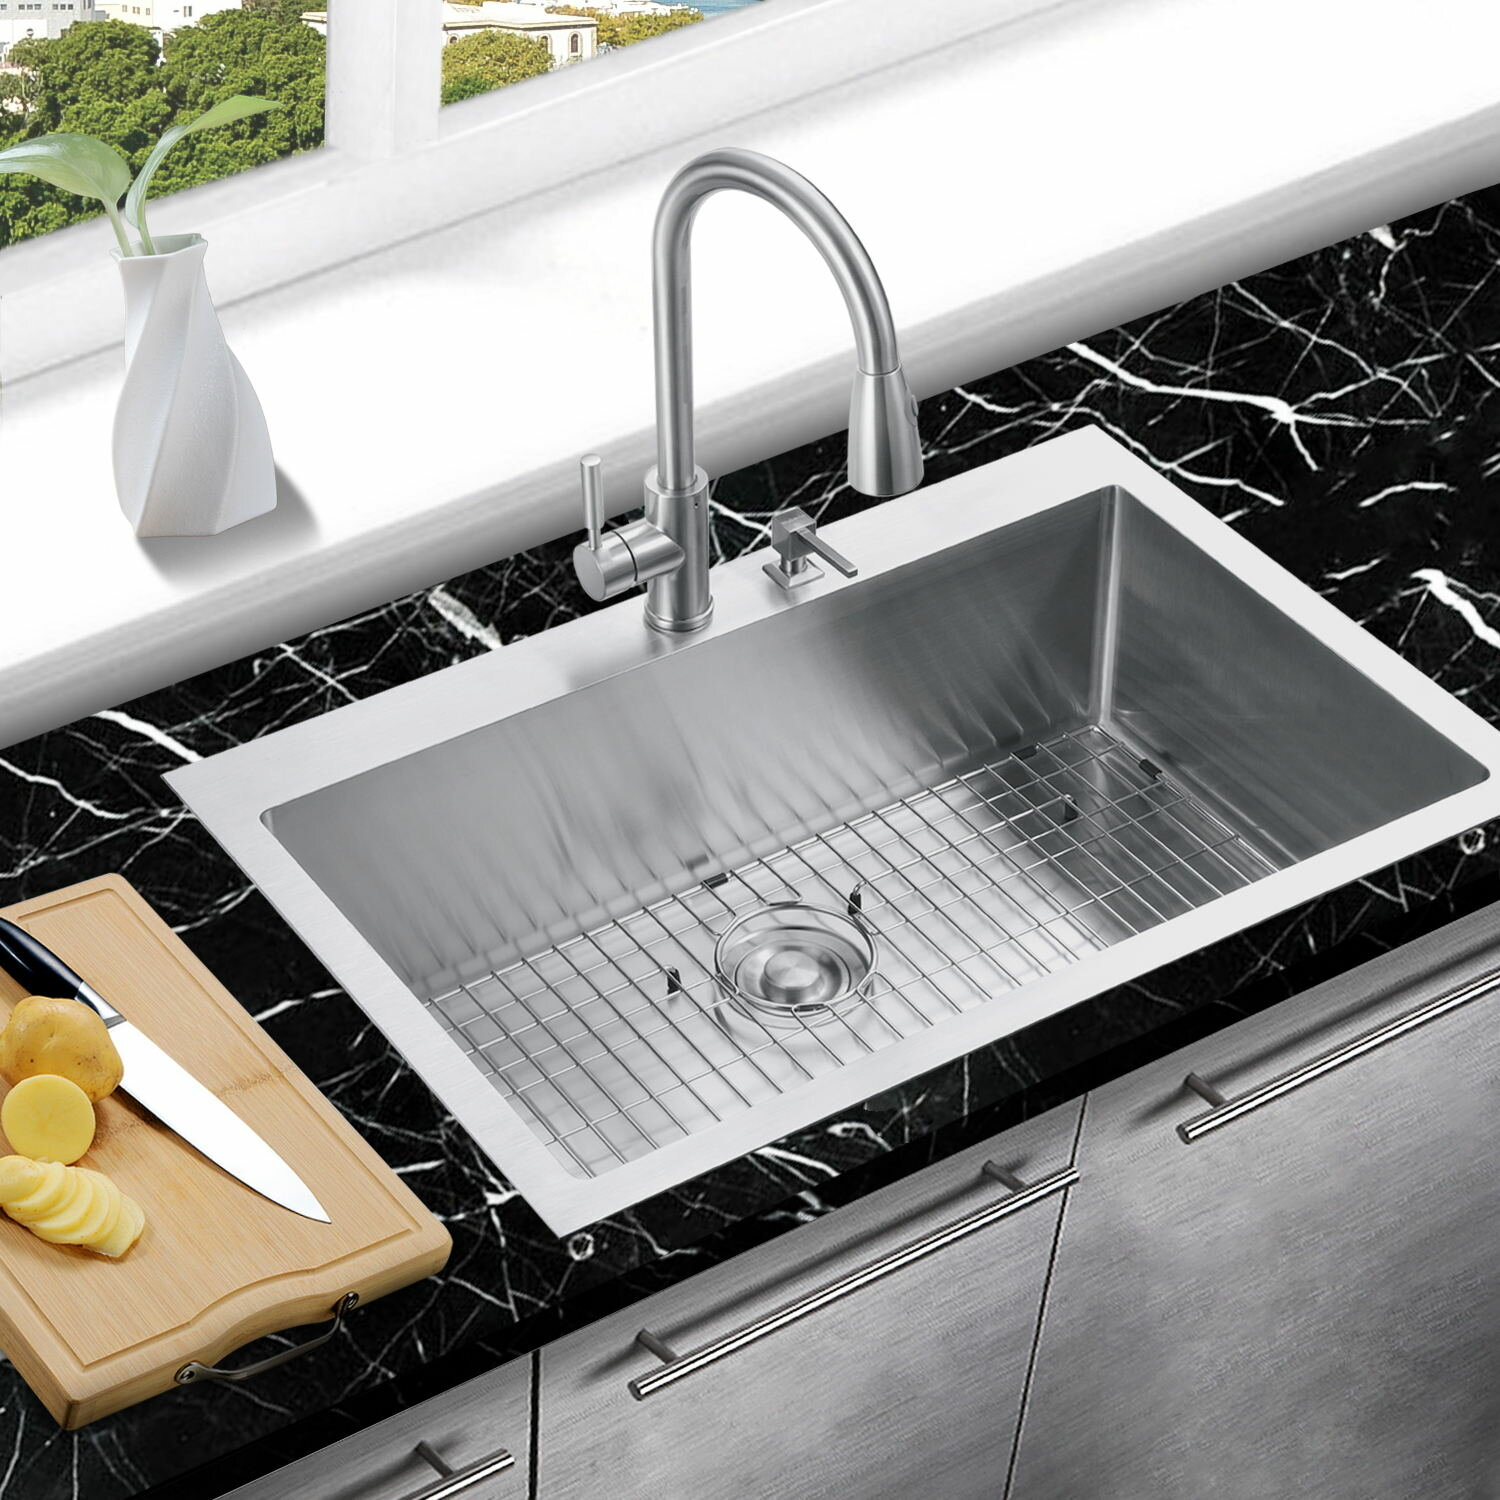 Handmade 33 L X 22 W Drop In Kitchen Sink With Sink Grid And Drain Assembly